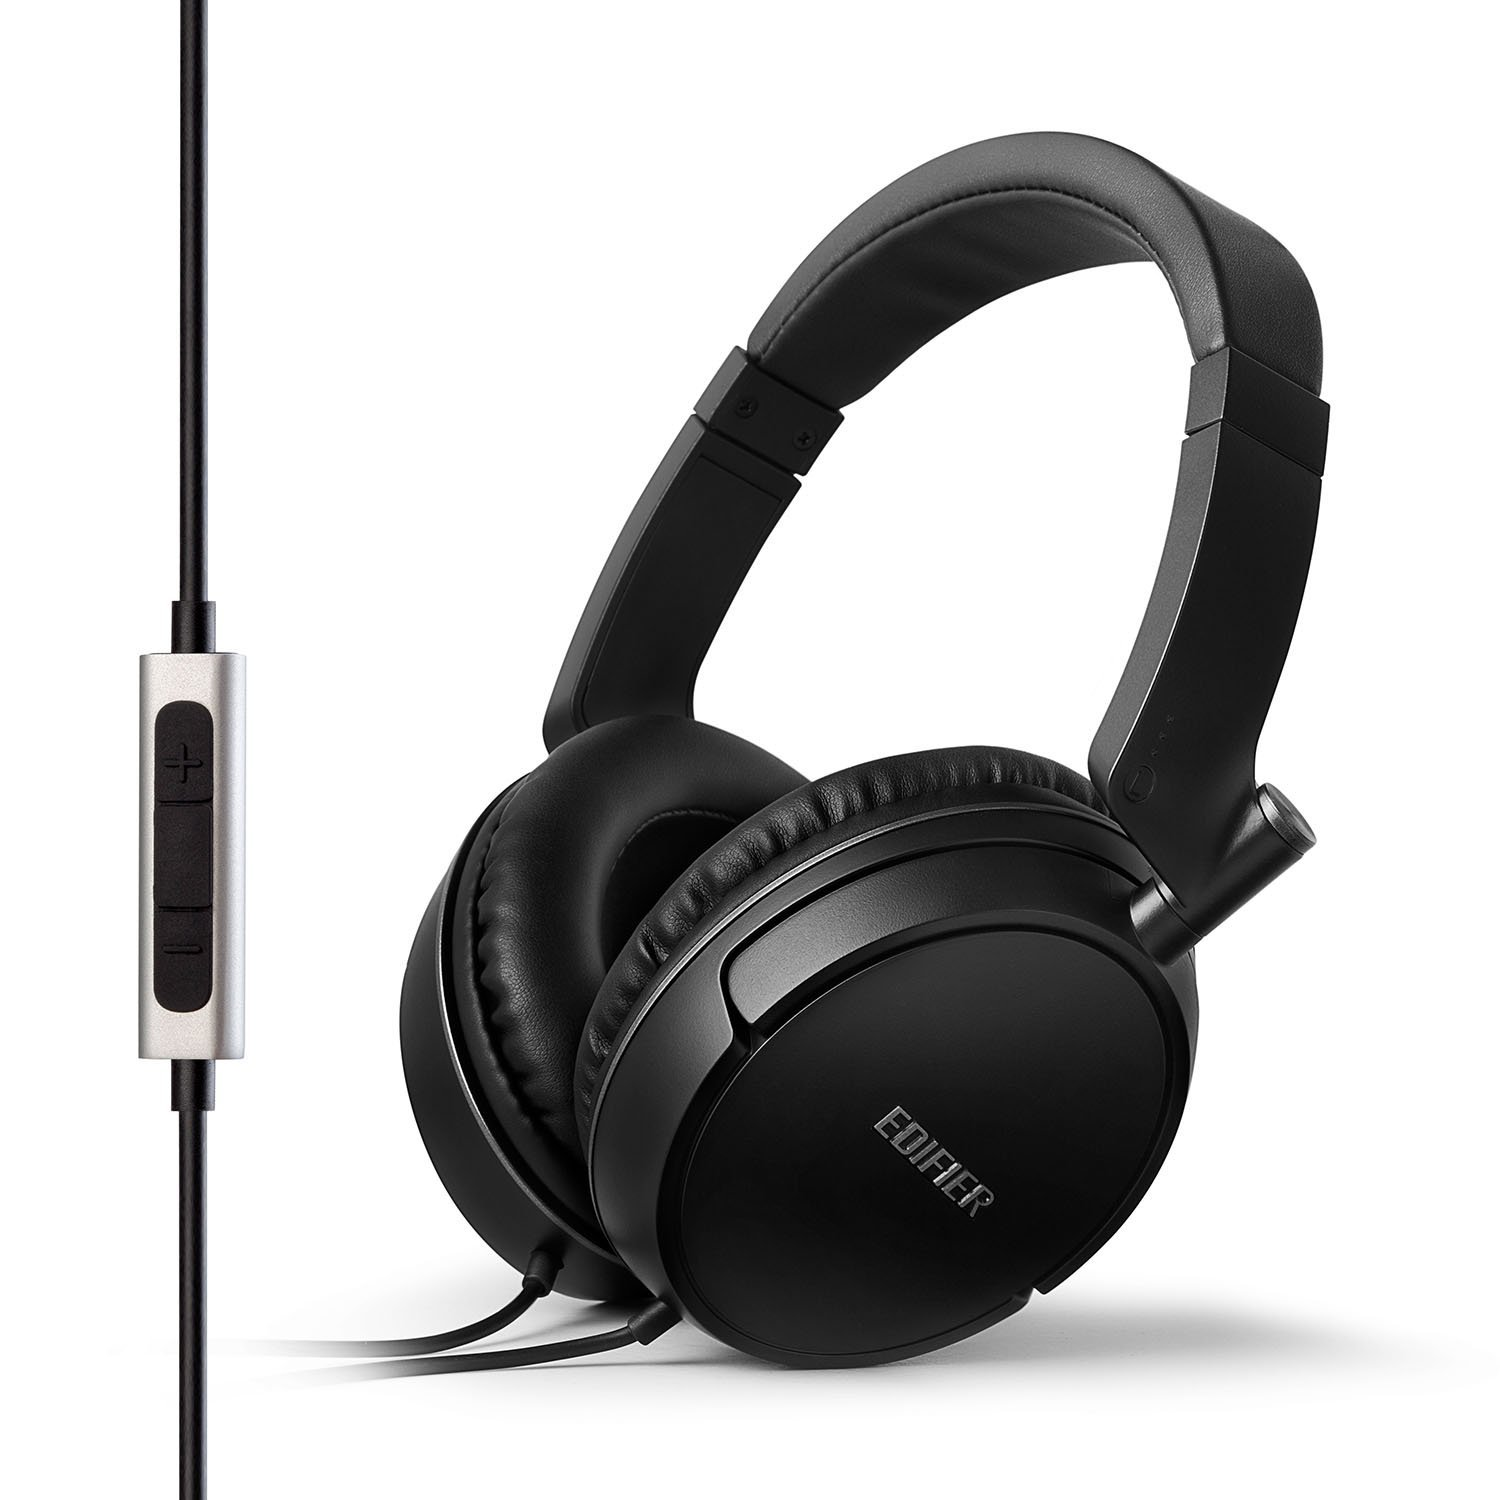 Edifier Over-Ear Headphones with Microphone